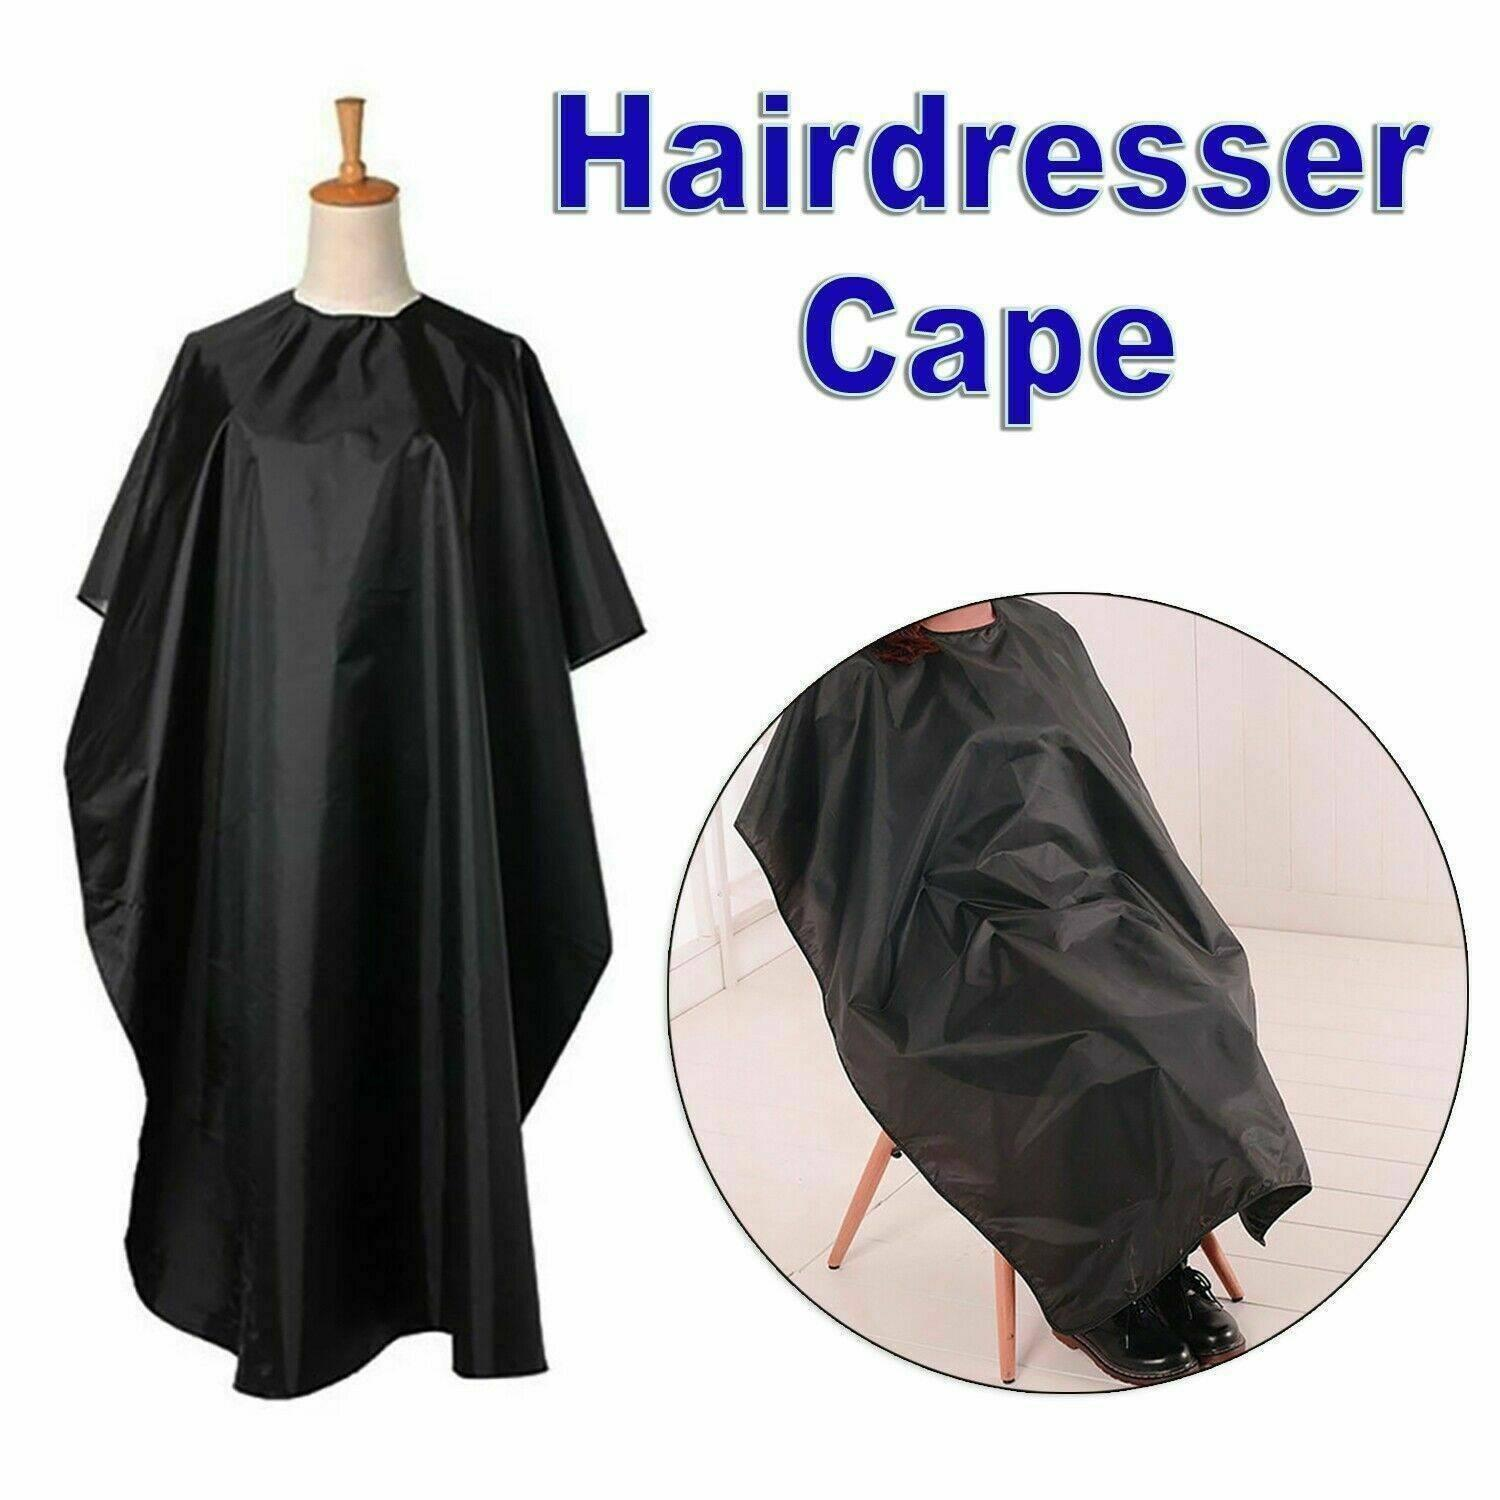 DHL 140*95cm Black Barber Cape Convenient Fold Hair Cut Hairdressing Gown Cloth Styling Tools Hairdresser Supplies Waterproof FY4080